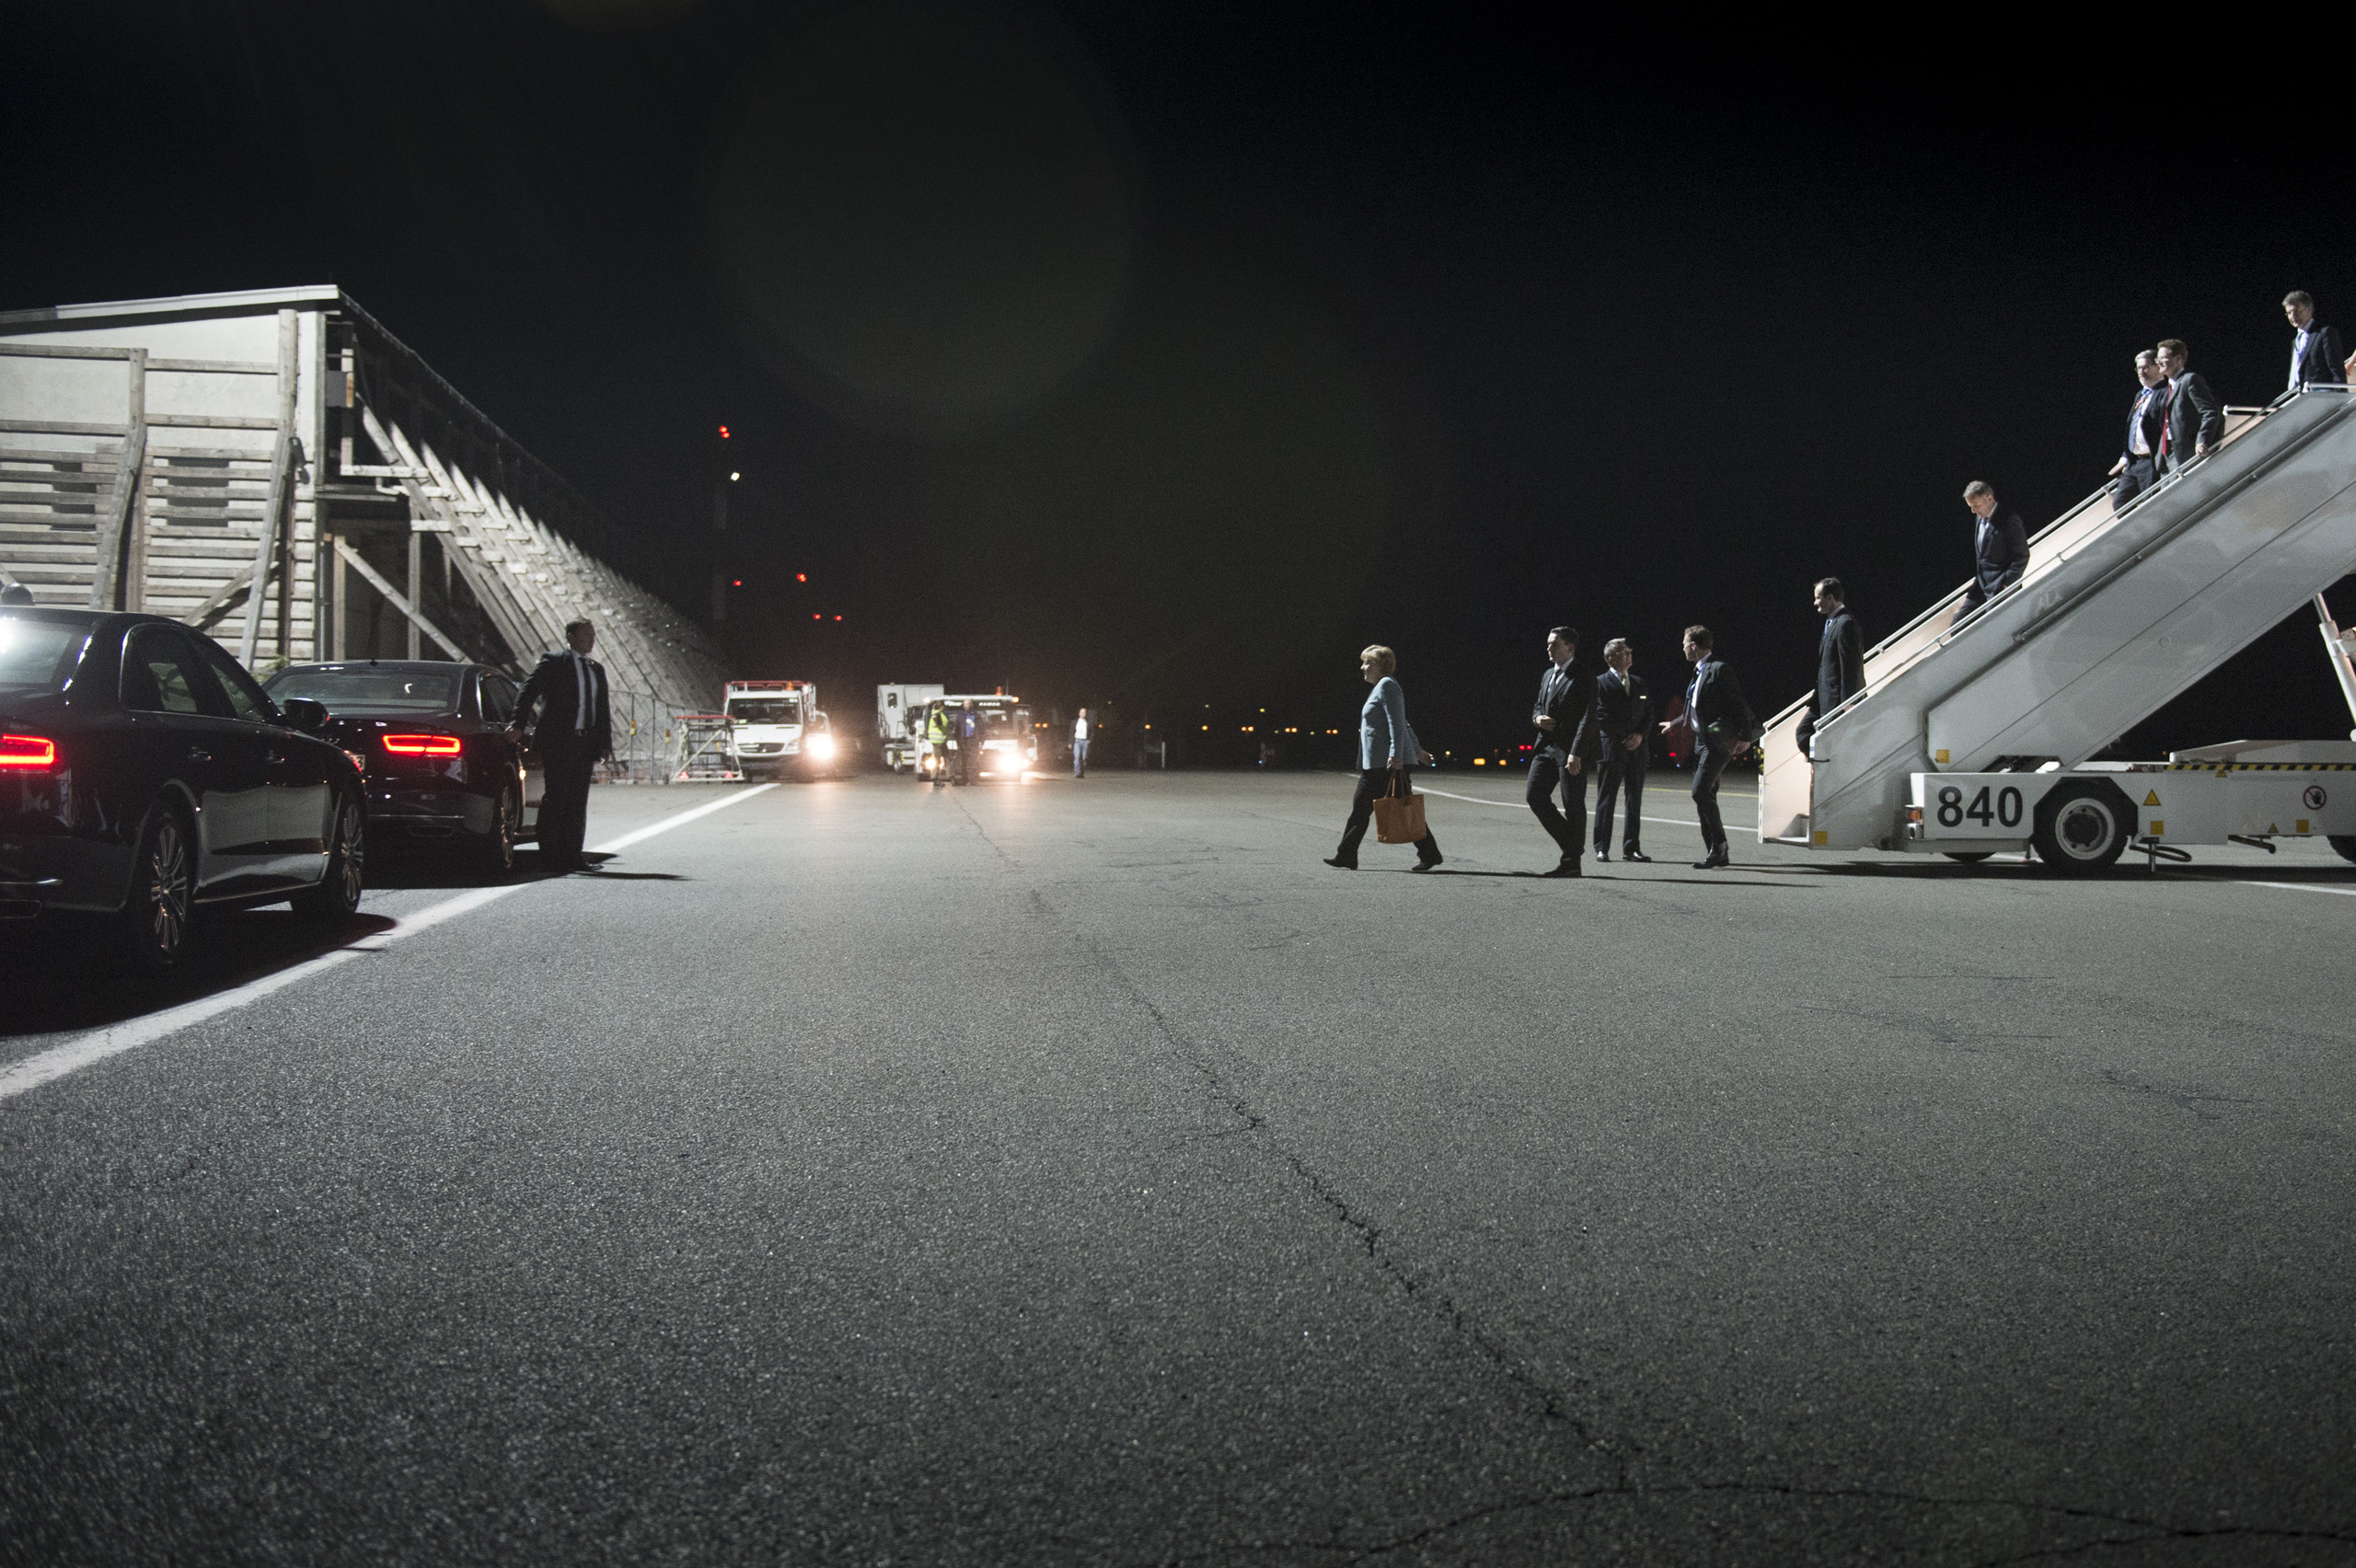 Chancellor Merkel returns to Berlin airport at 3 AM after a meeting at the European Council in Brussels. May 24, 2012.